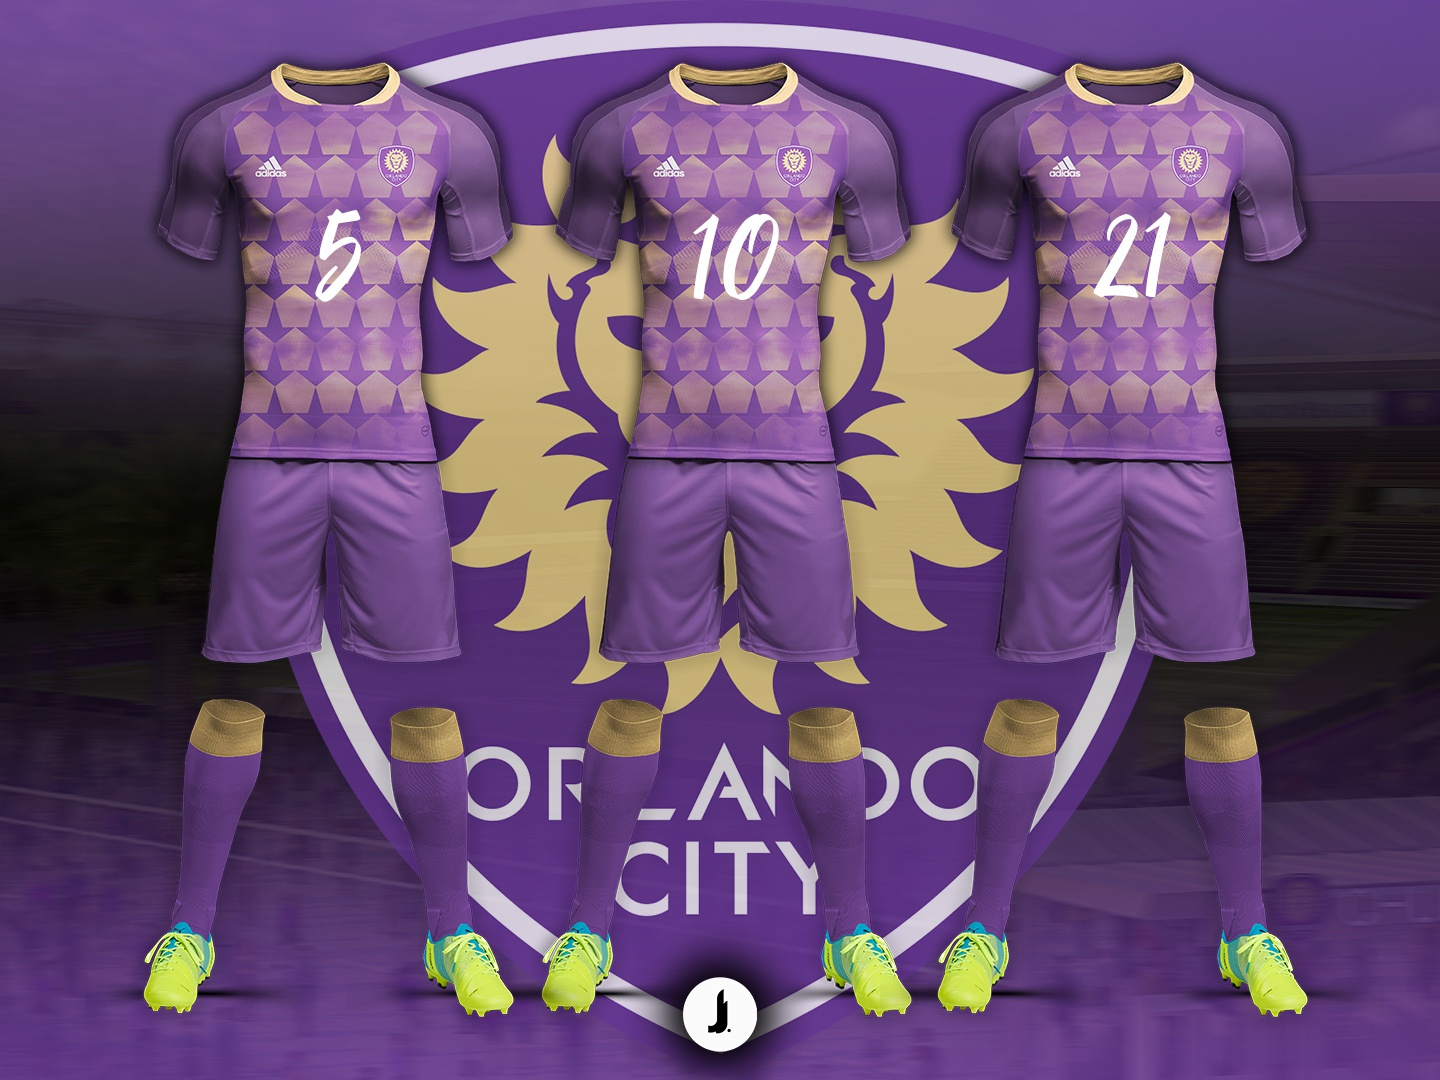 outlet store e569a c5f2e Orlando City Soccer Club   Home Jersey Concept by Jonathan ...